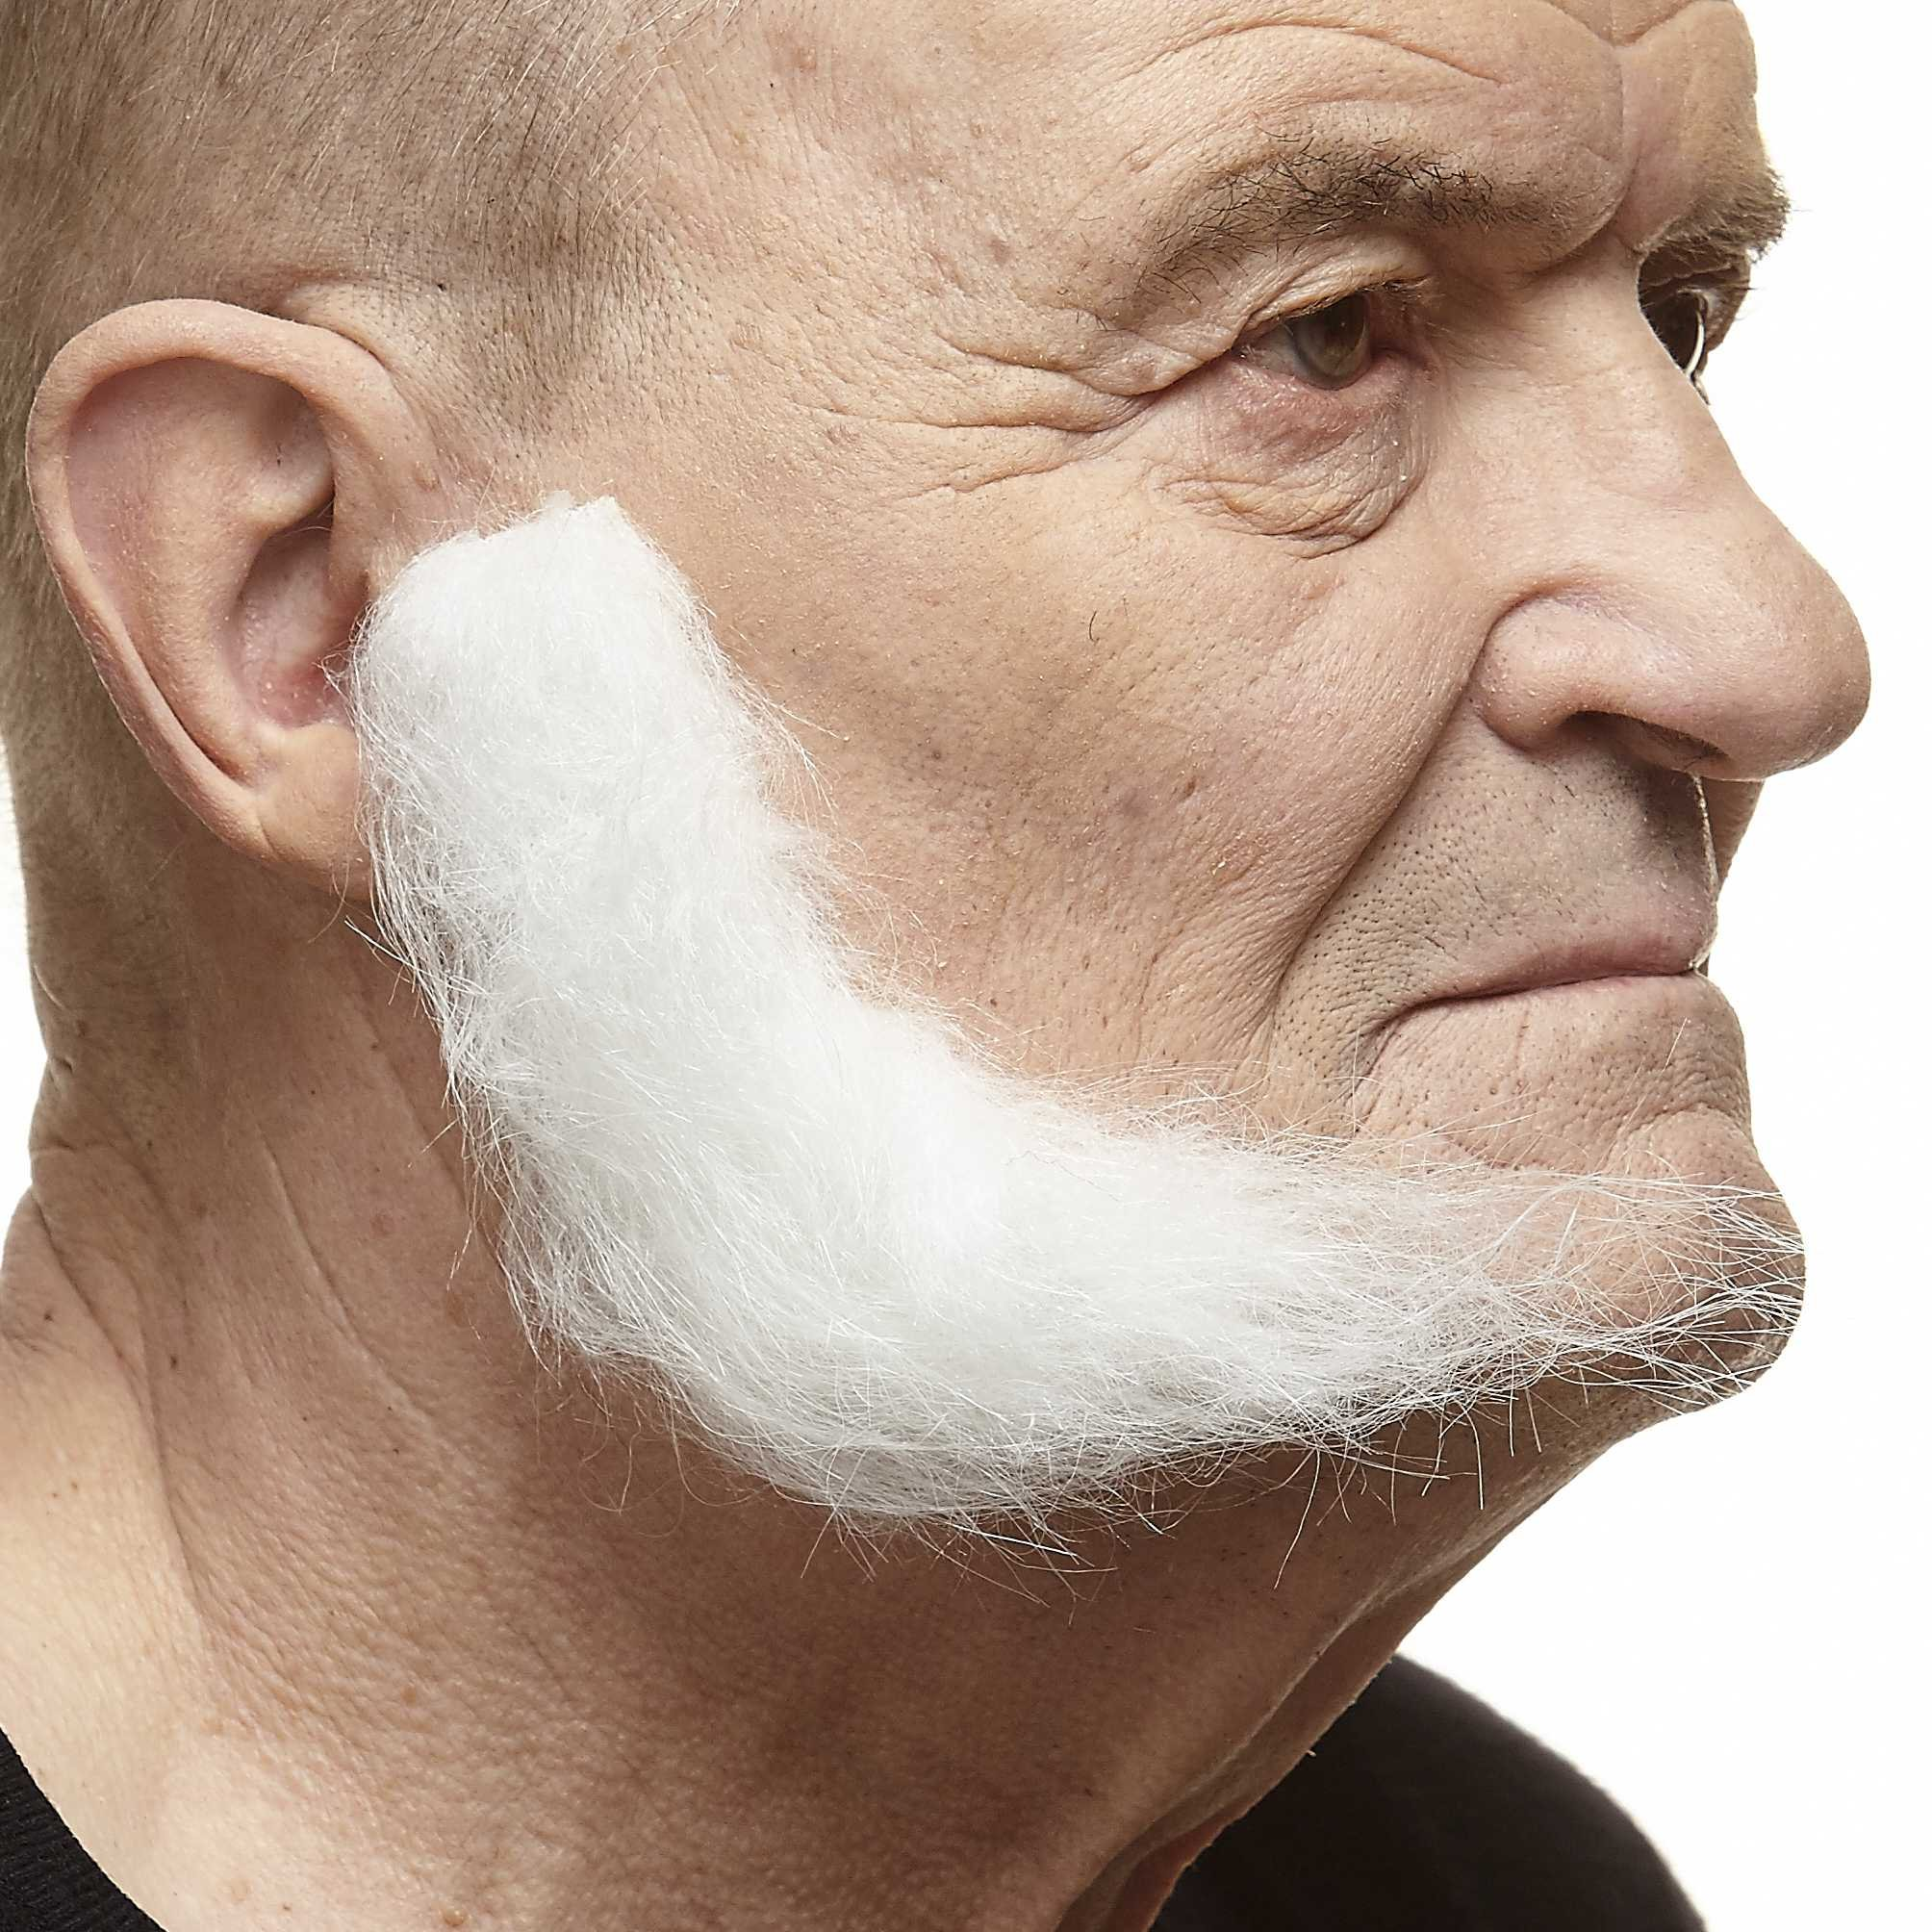 Mustaches Self Adhesive, Novelty, Realistic, Fake, L Shaped Mutton Chops Sideburns, White Color